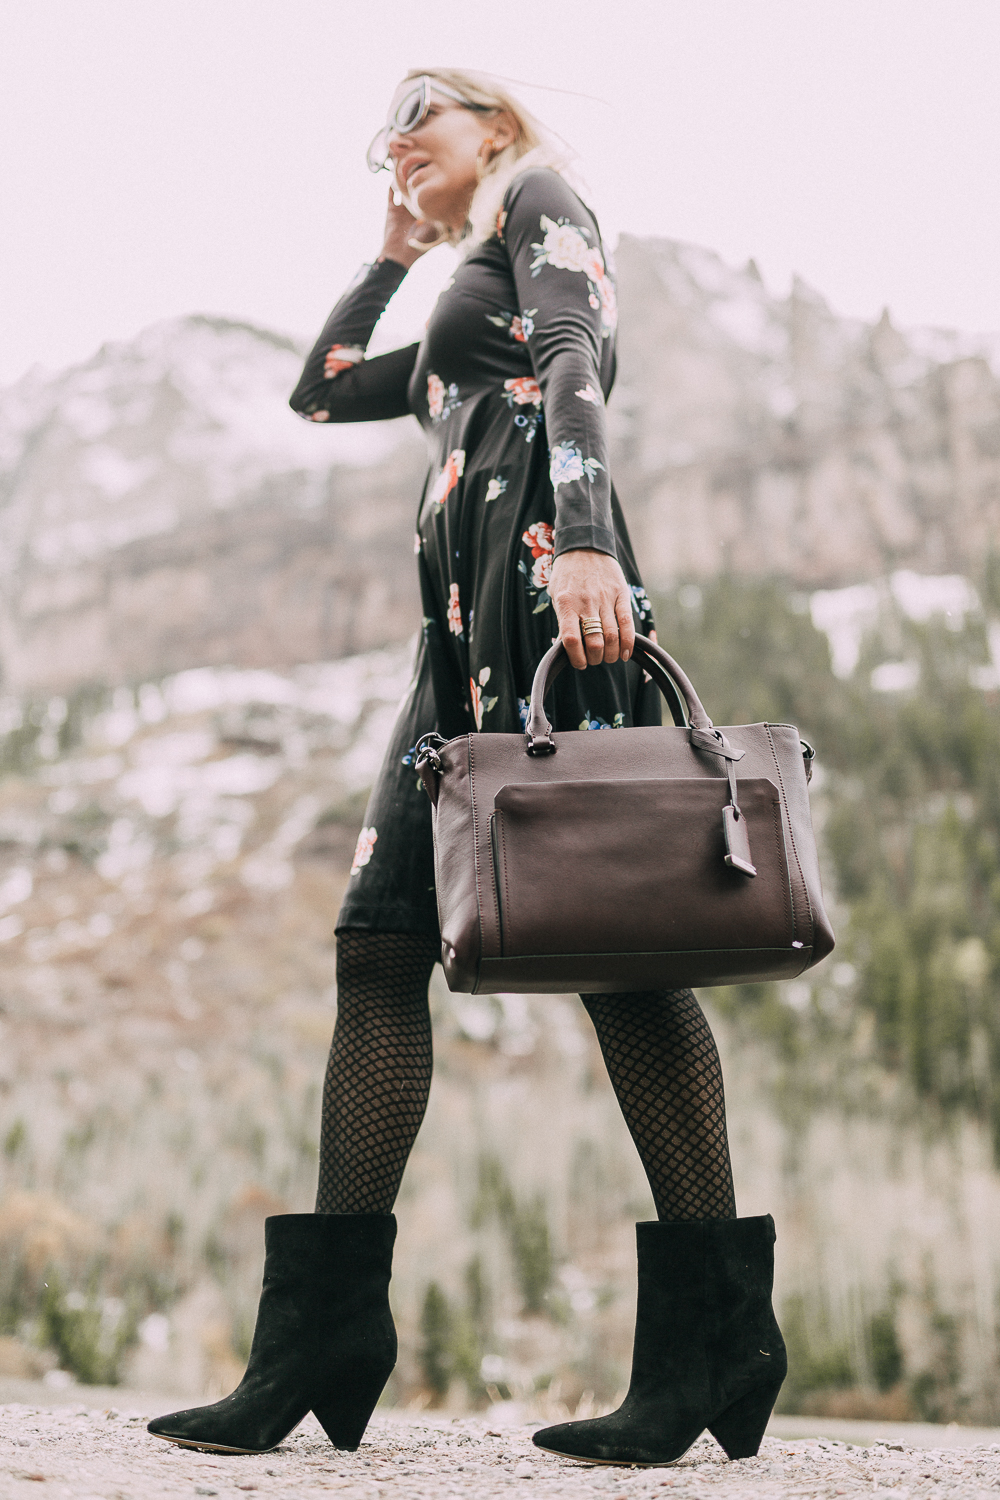 Suede Booties by Vince Camuto paired with black floral print dress and burgundy tote bag on blonde woman in rocky mountains